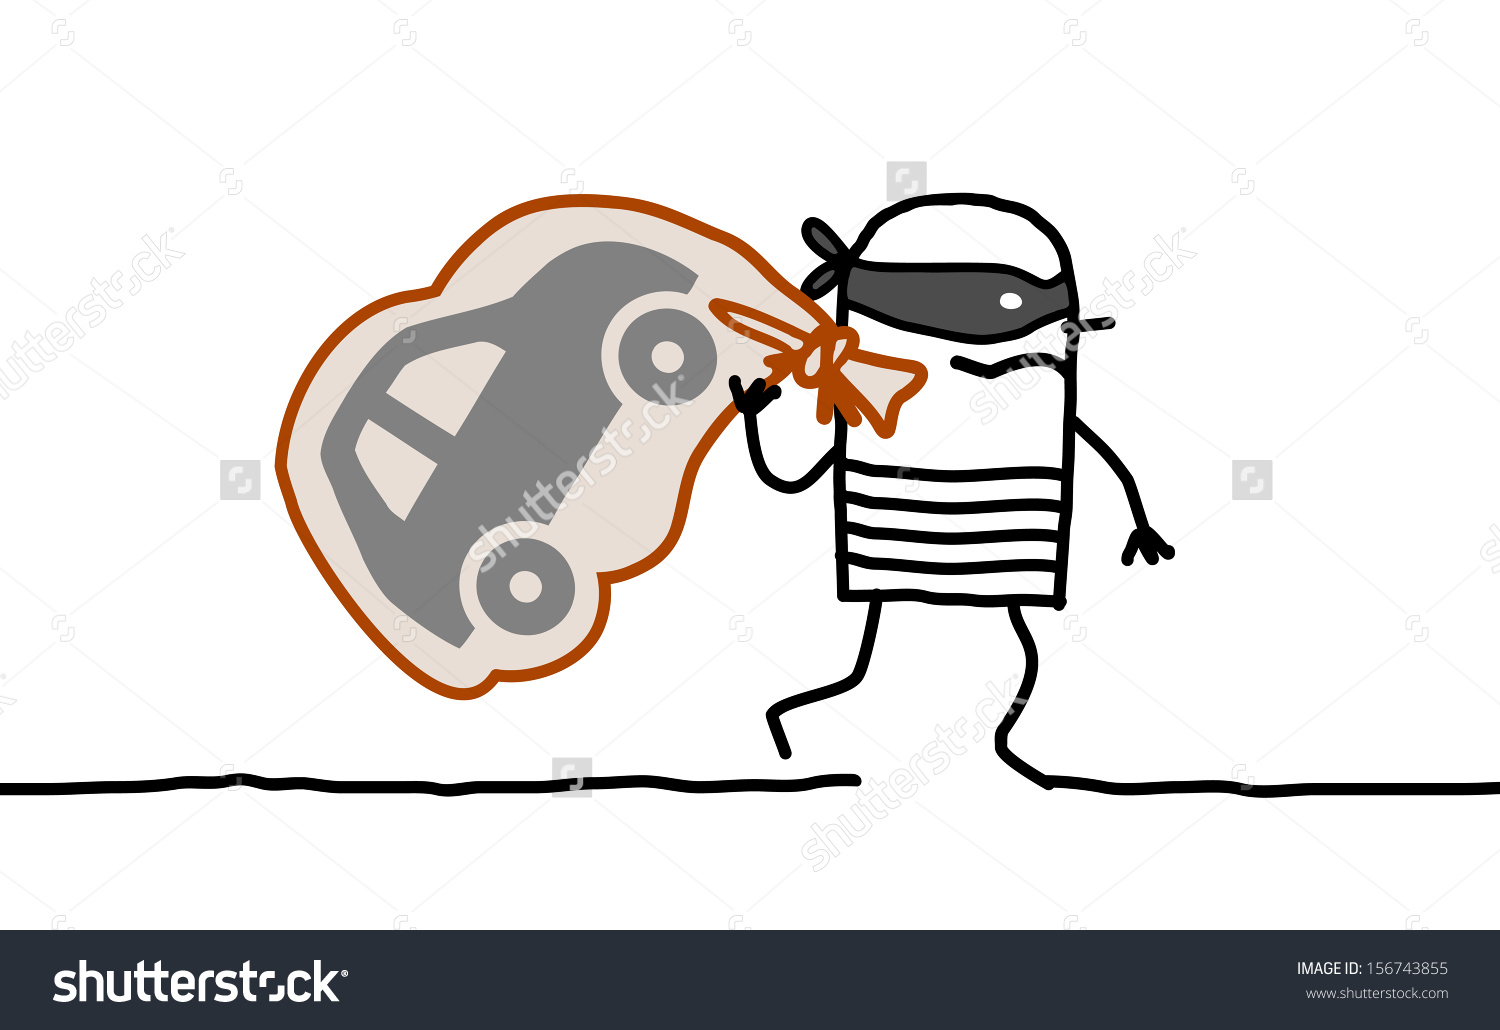 Hand Drawn Cartoon Characters Car Thief Stock Vector 156743855.